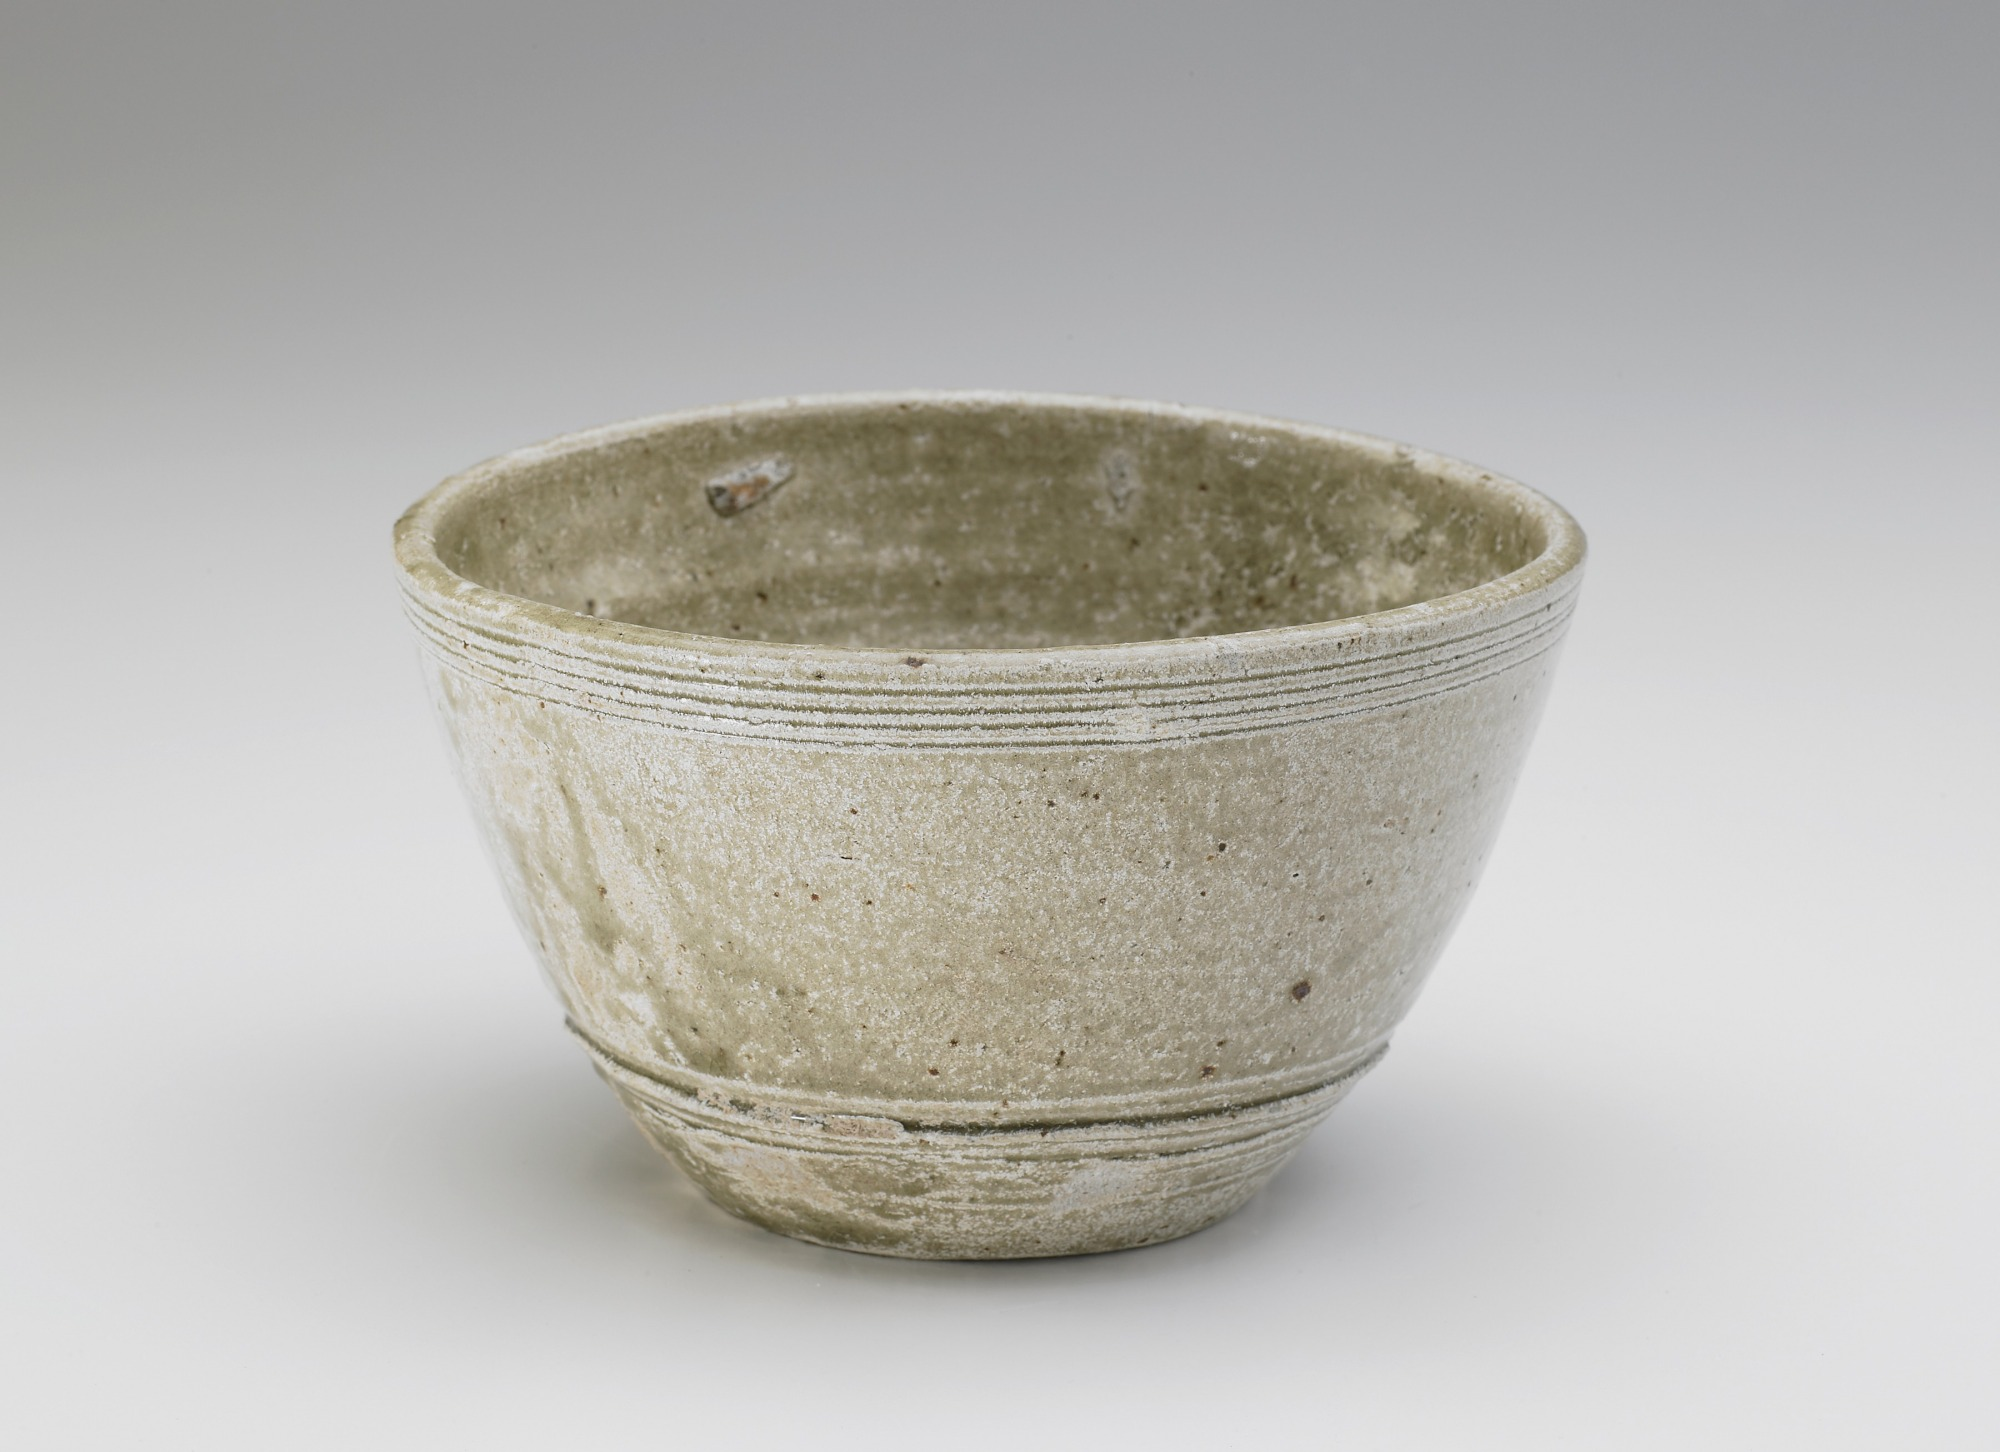 profile: Bowl